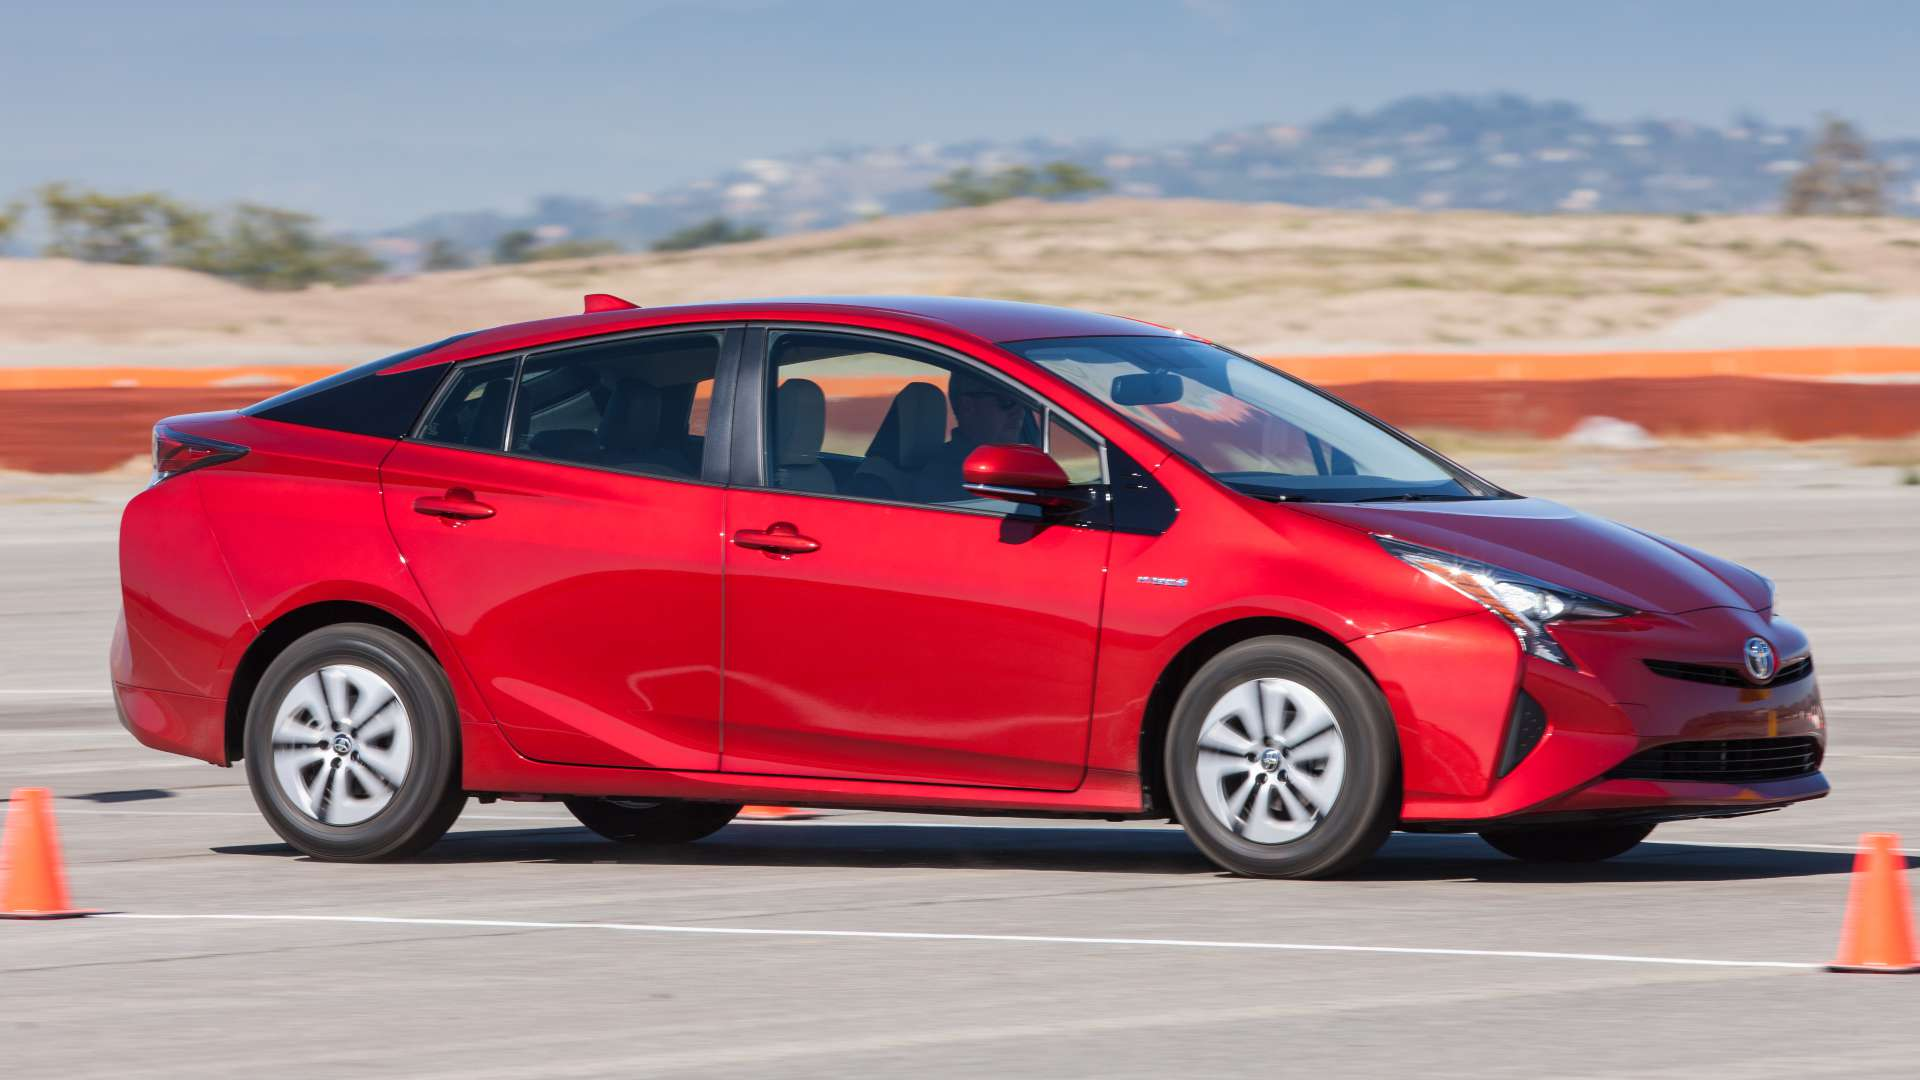 A And B Kia >> 2016 Toyota Prius Review - Consumer Reports